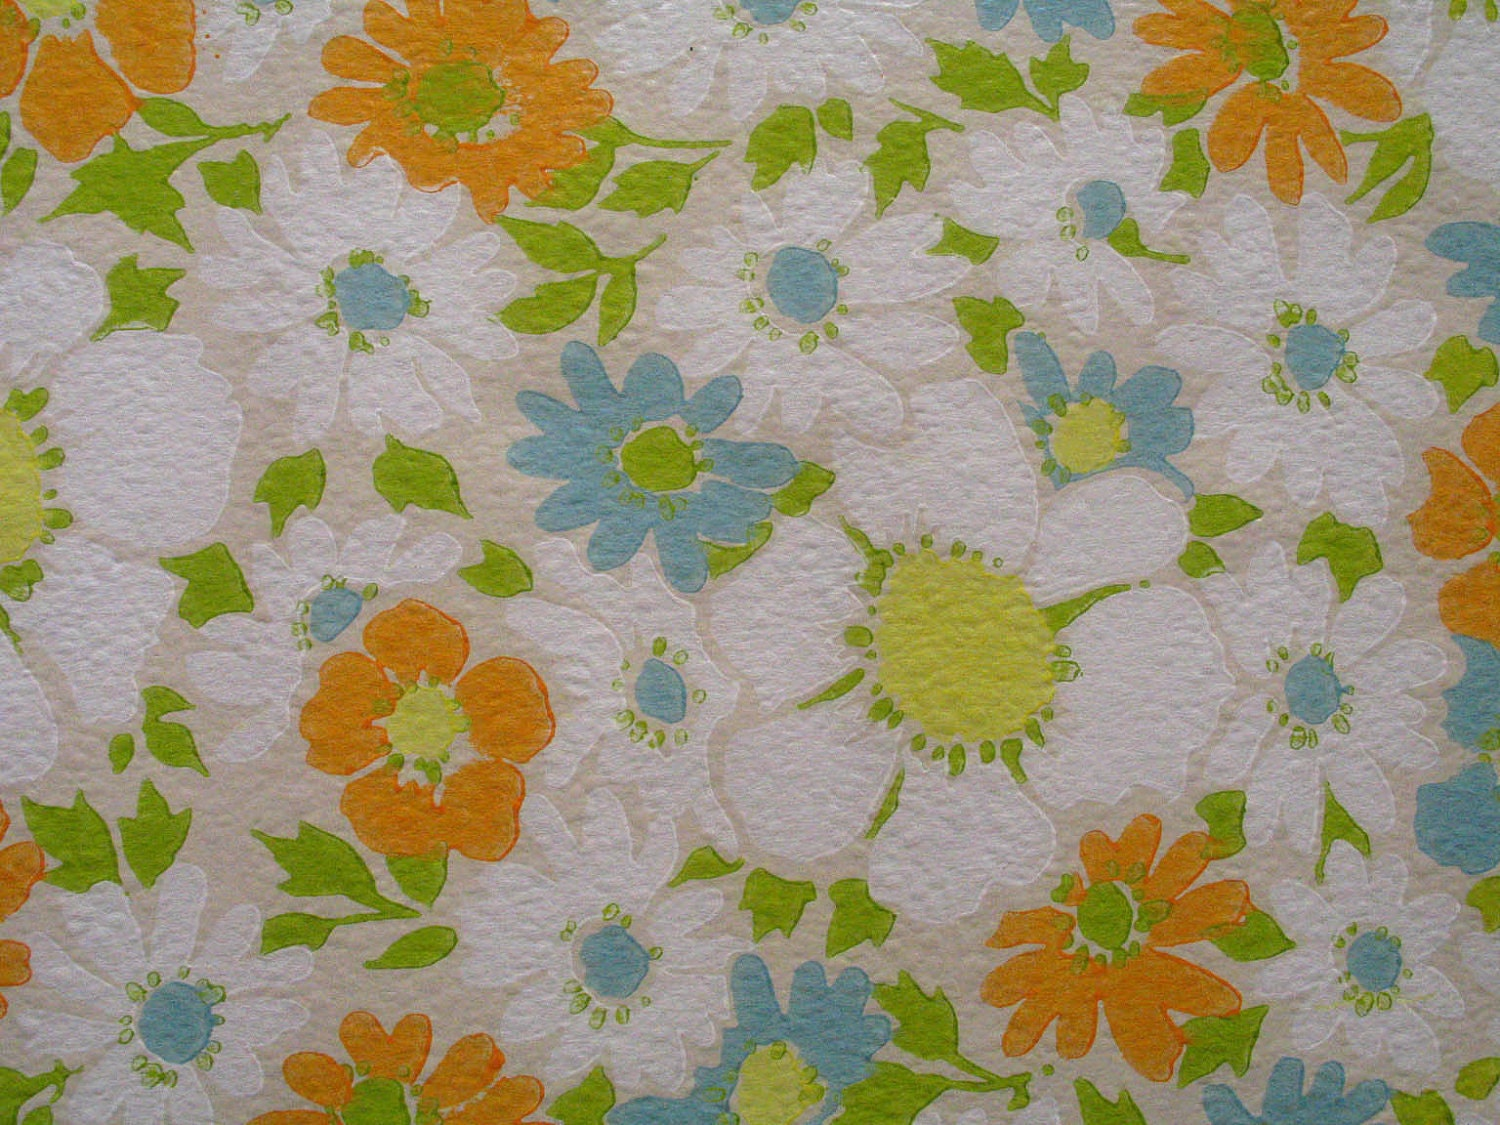 Daisy pattern wallpaper - photo#51